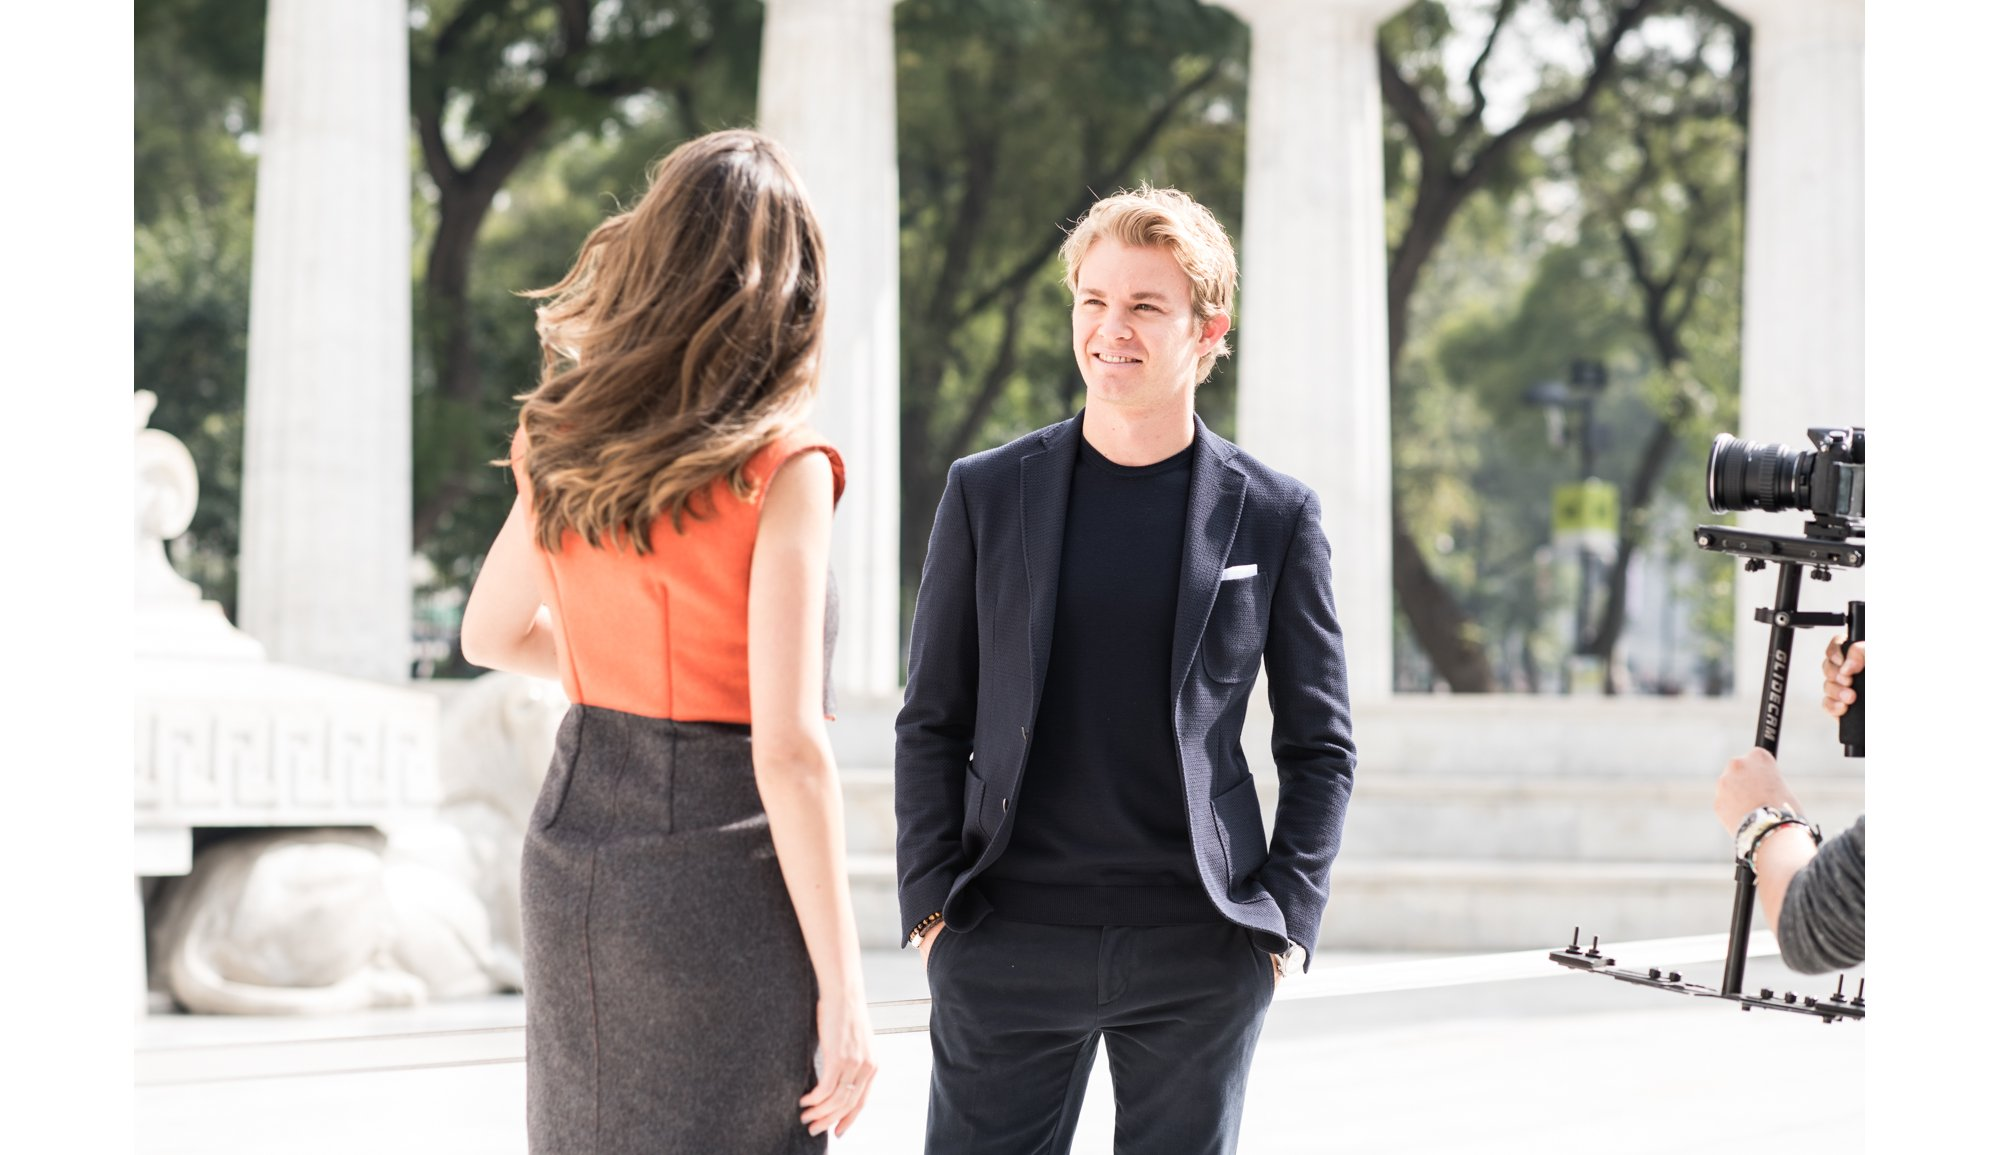 Nico Rosberg wearing a black shirt and suit by BOSS, Lety Sahagún wearing a gray skirt and orange top by BOSS